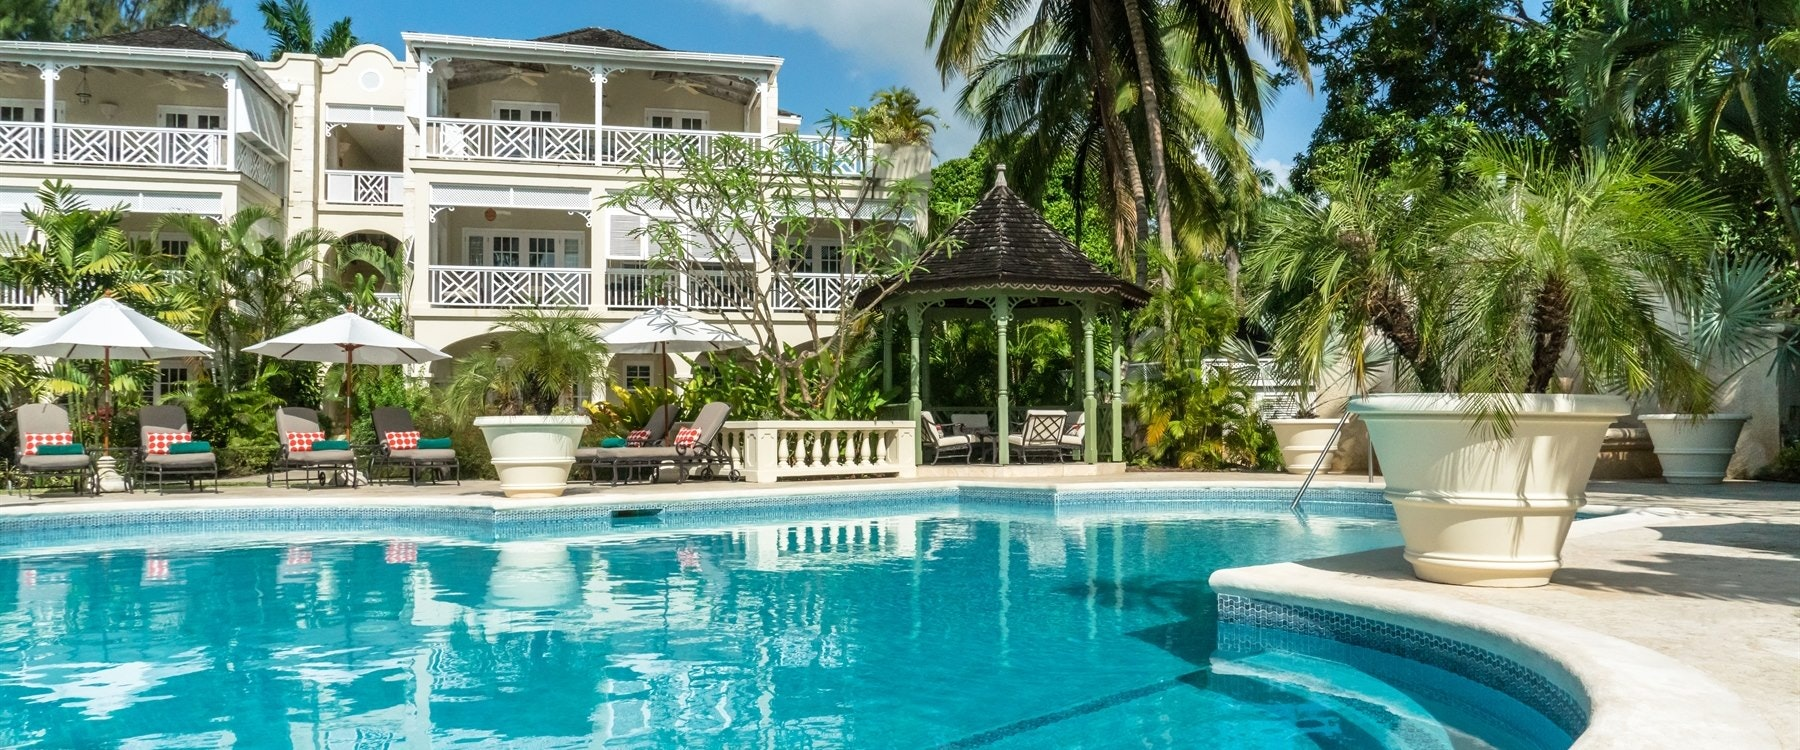 Swimming Pool at Coral Reef Club, Barbados